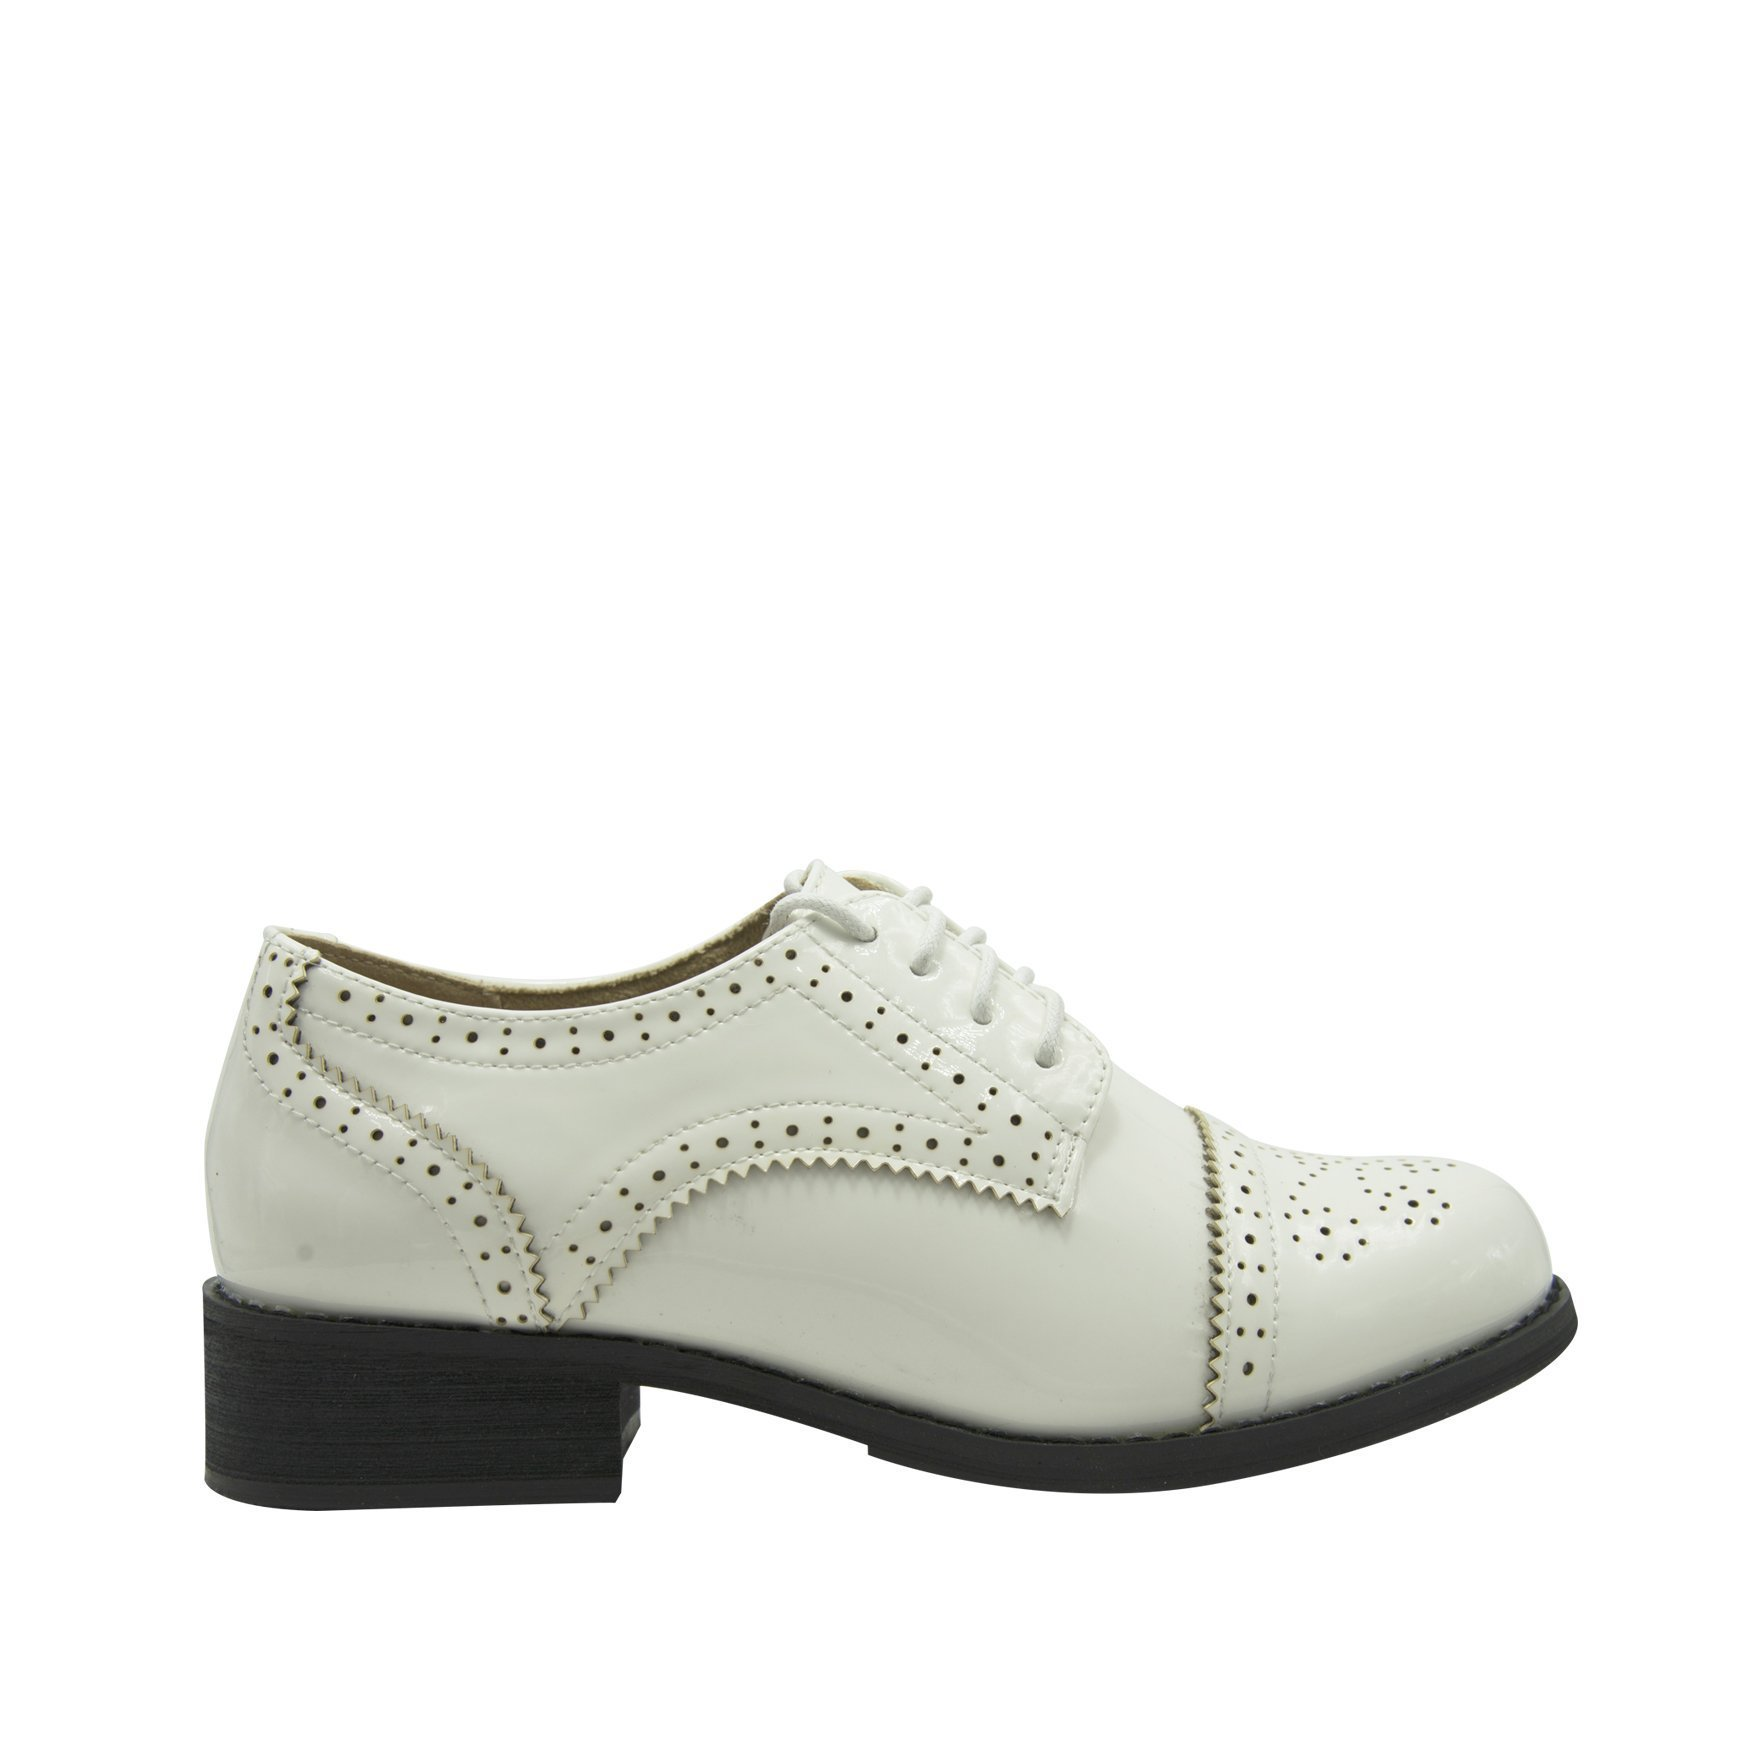 GottaBe Womens Perforated Lace-up White Leather Oxfords Shoes - Oxfords Shoes Women - Vintage Oxford Shoes(9) by GottaBe (Image #1)